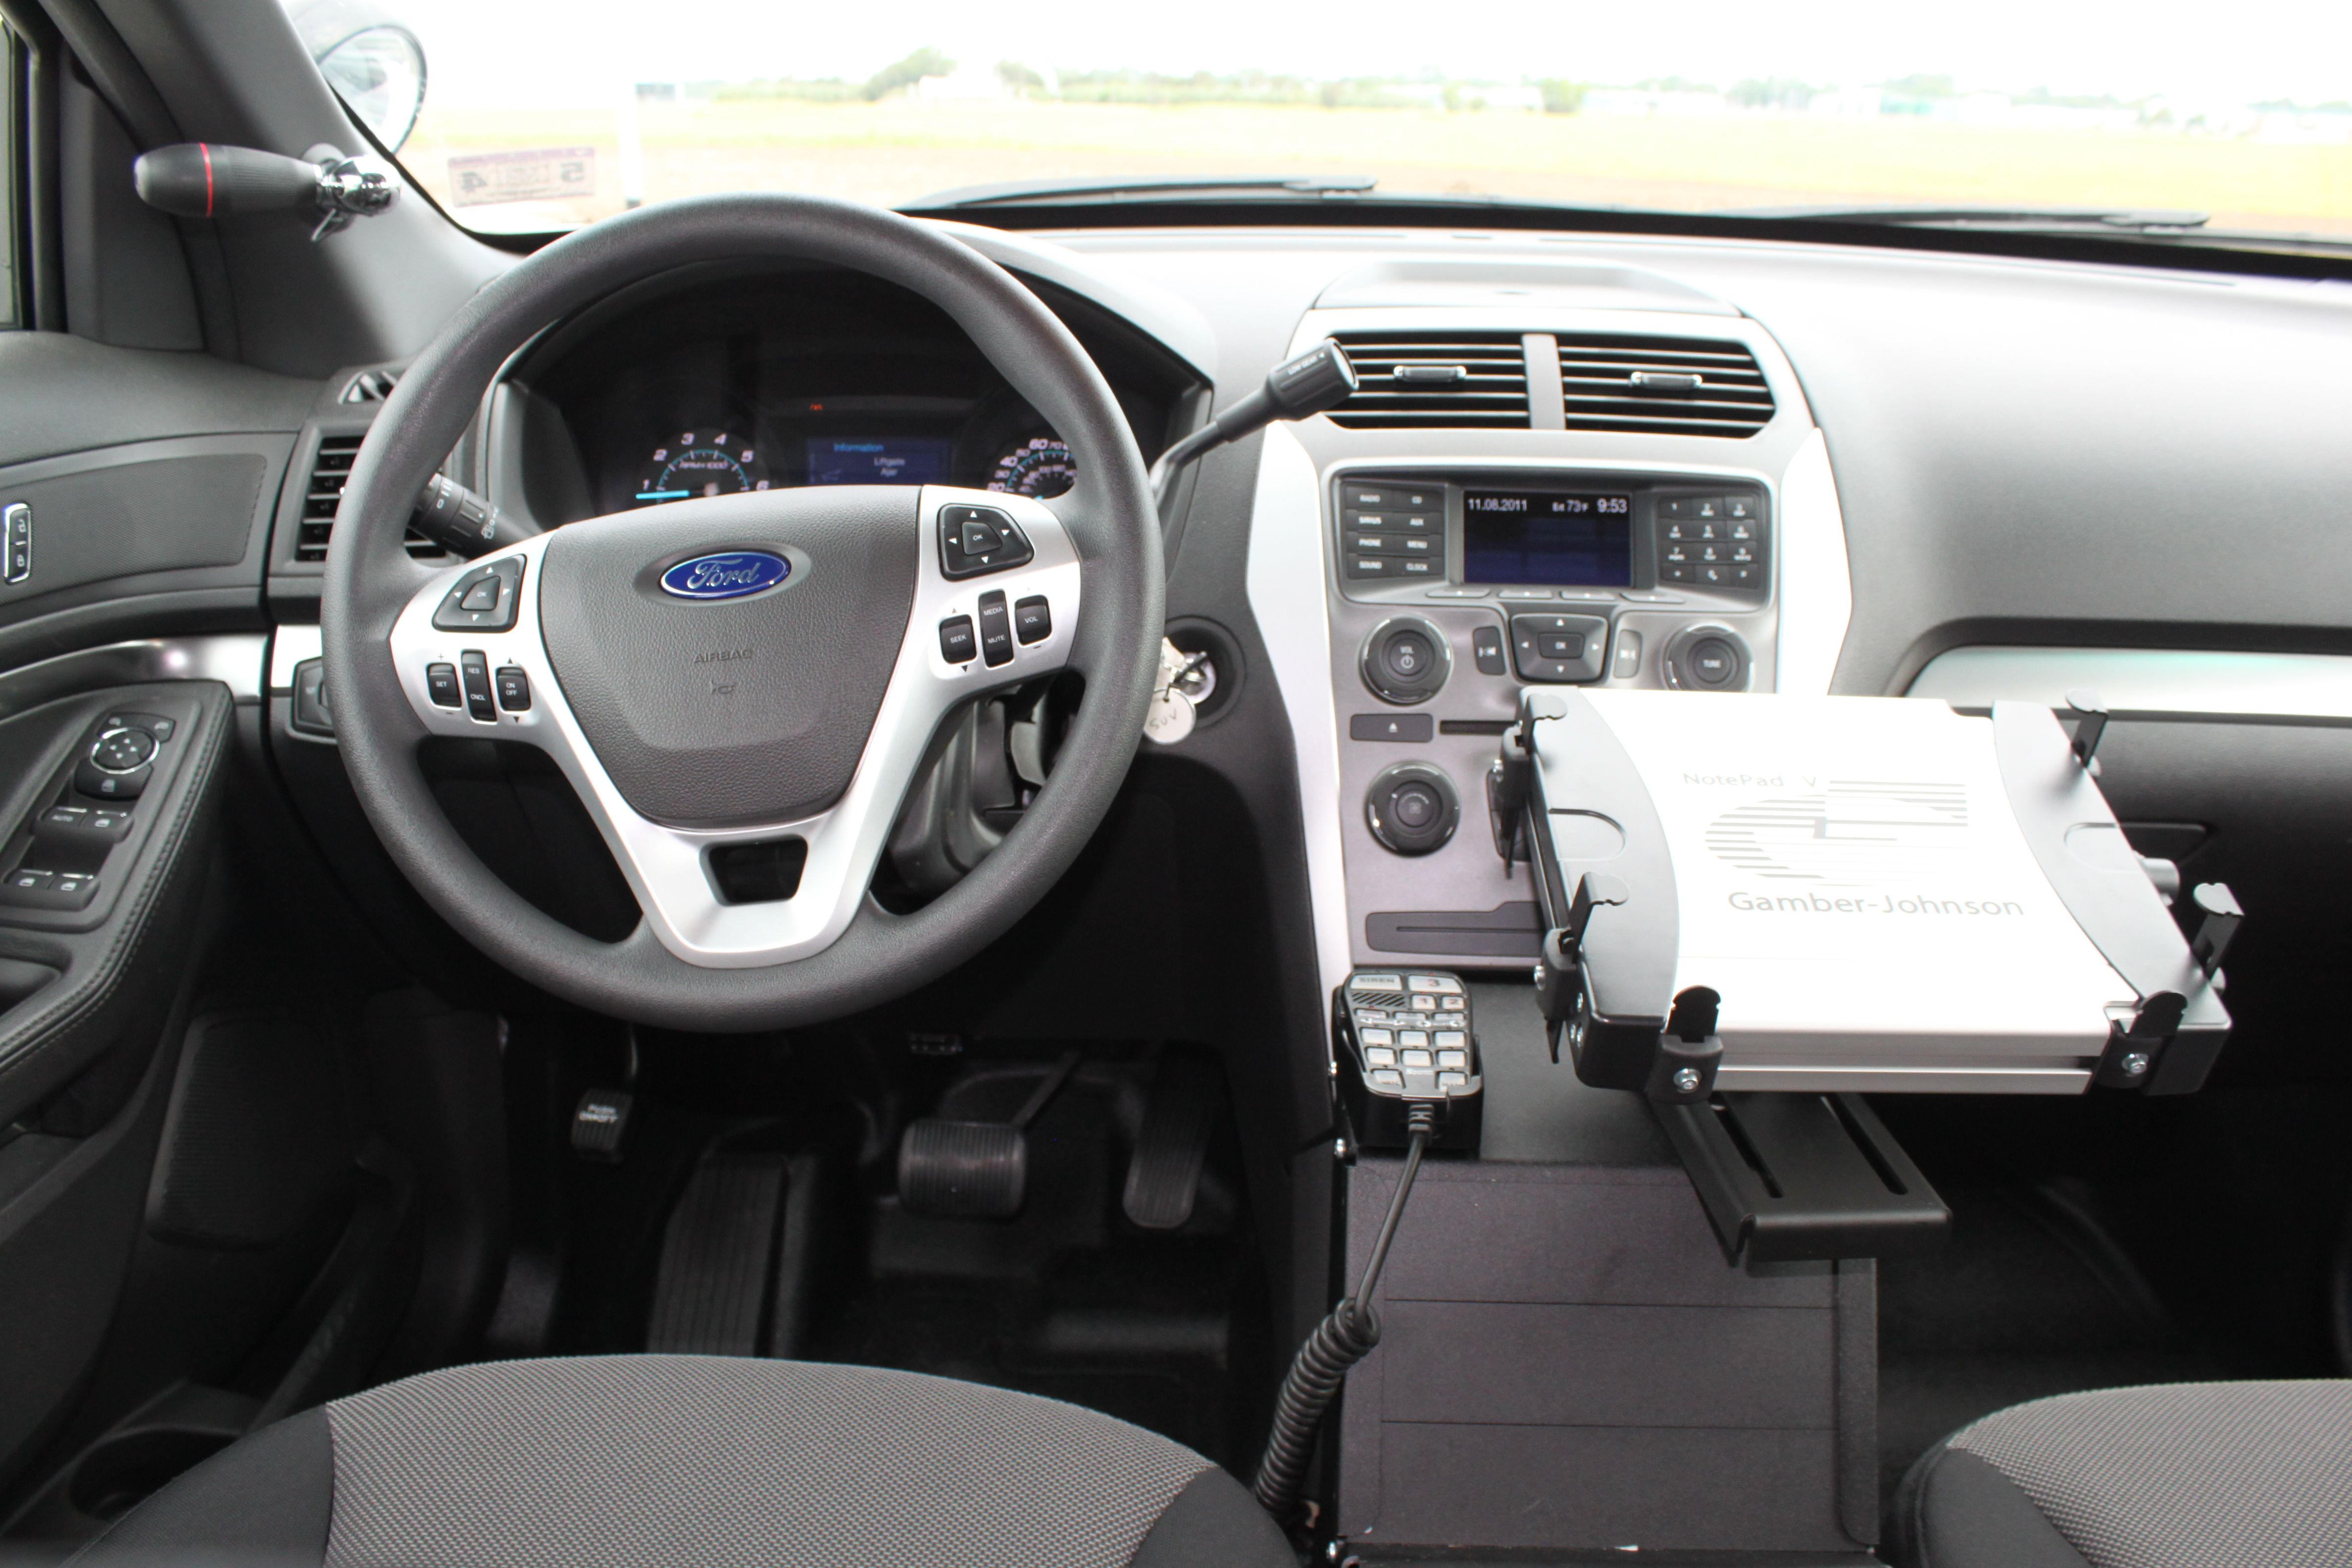 2013 Ford Police Interceptor Suv Dash View Ford Police Bug Out Vehicle Interceptor